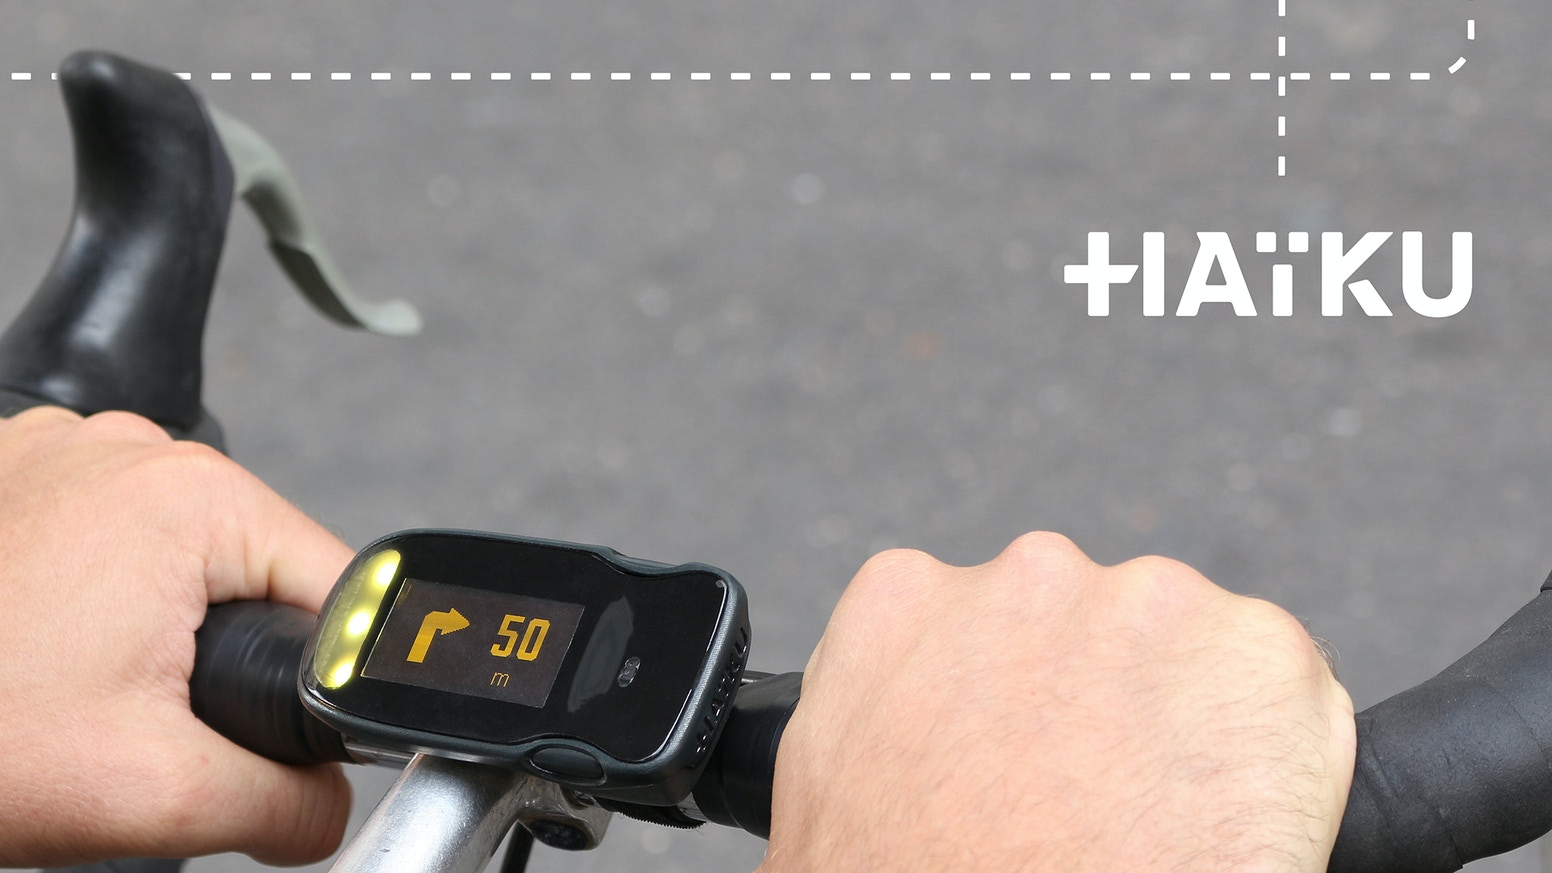 Next generation of bike computer for smart urban cyclists: get on your handlebar just the info you need from your smartphone.